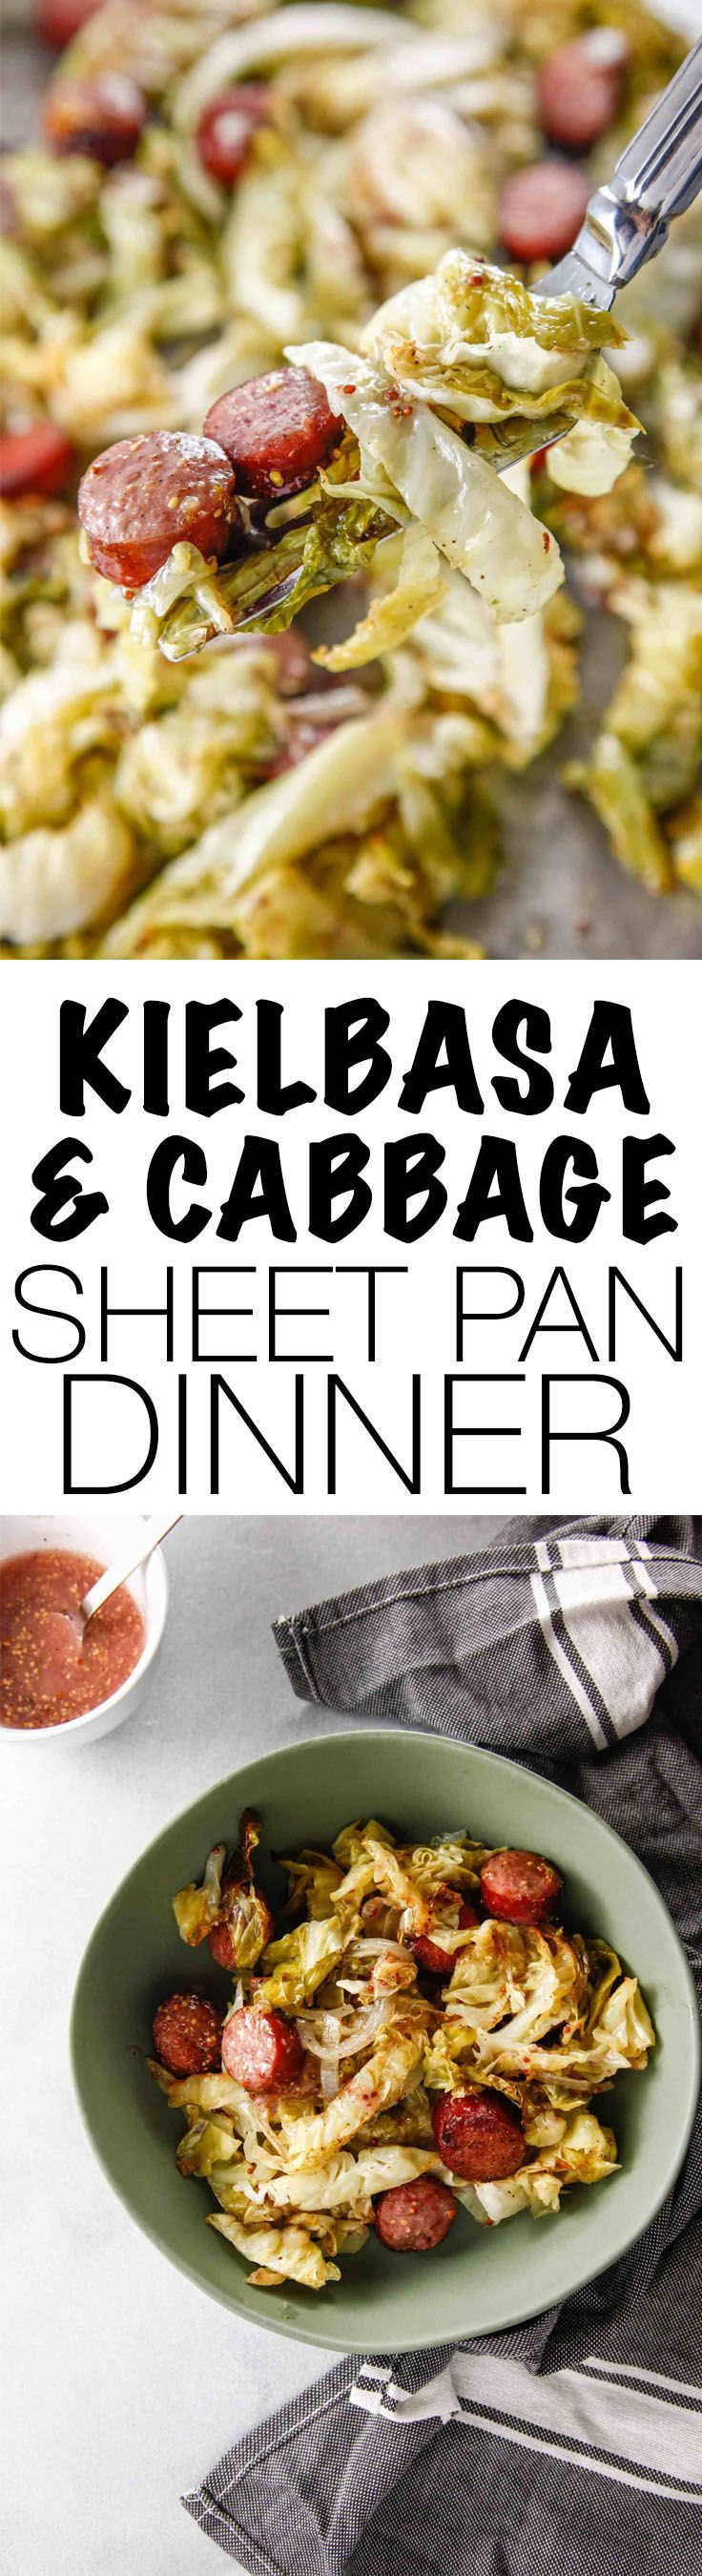 An all in one sheet pan dinner has got you covered. Slice, mix, season and cook, then eat! It's as easy as that. This Kielbasa and Cabbage Sheet Pan Roast recipe is sure to be a crowd pleaser! Via @thebrooklyncook #dinner #sheetpan #kielbasa #onepan